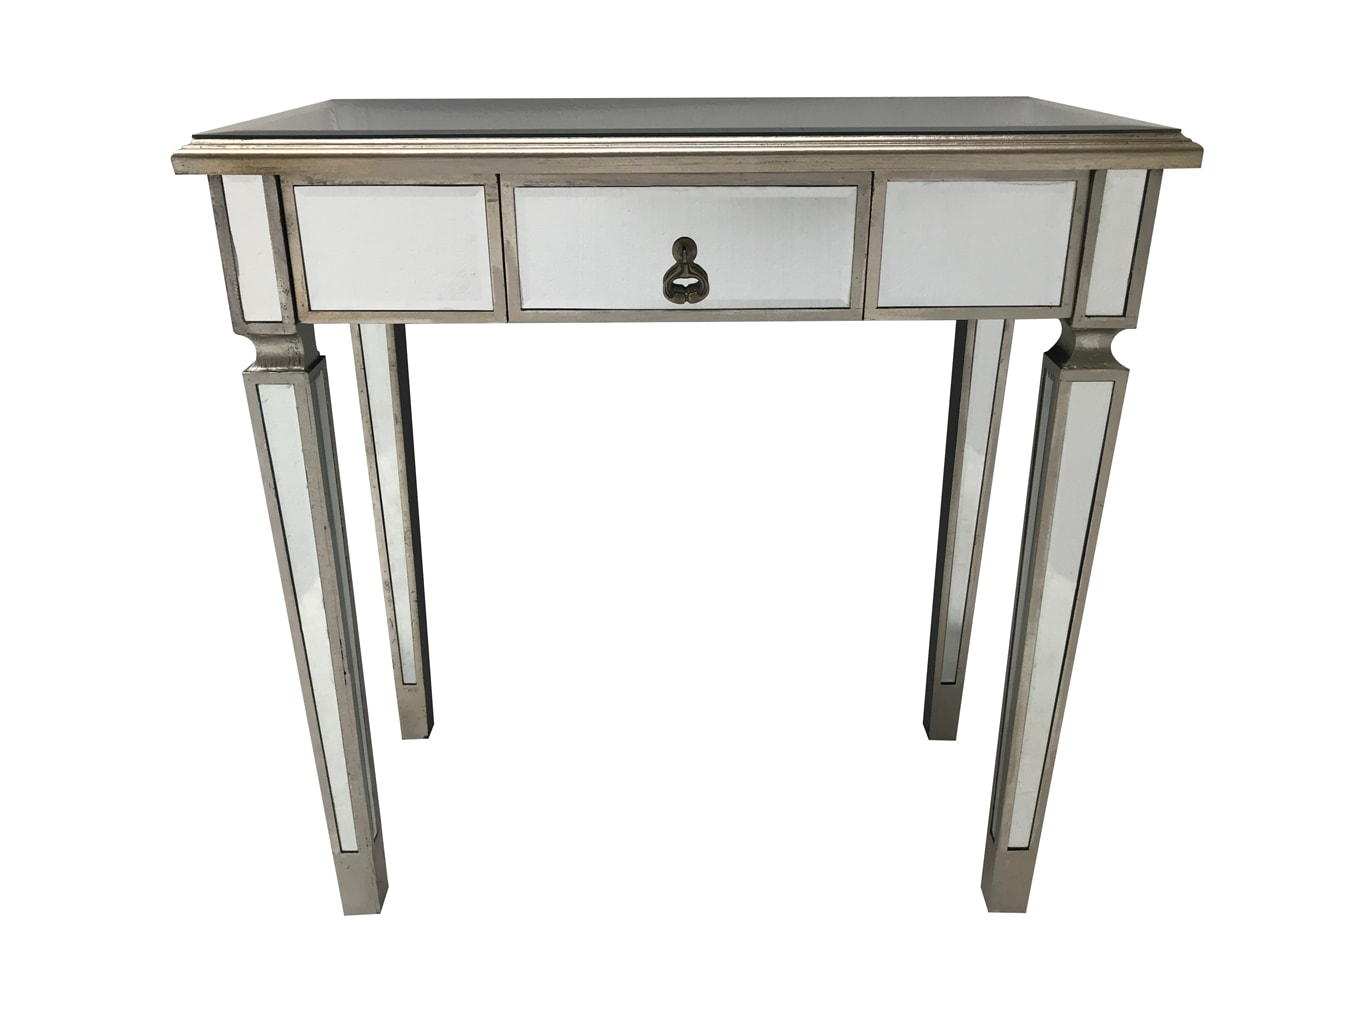 Charleston Mirrored Console Table with 1 drawer, slim design, drop shaped handle, antiqued silver finish, wood and mirror